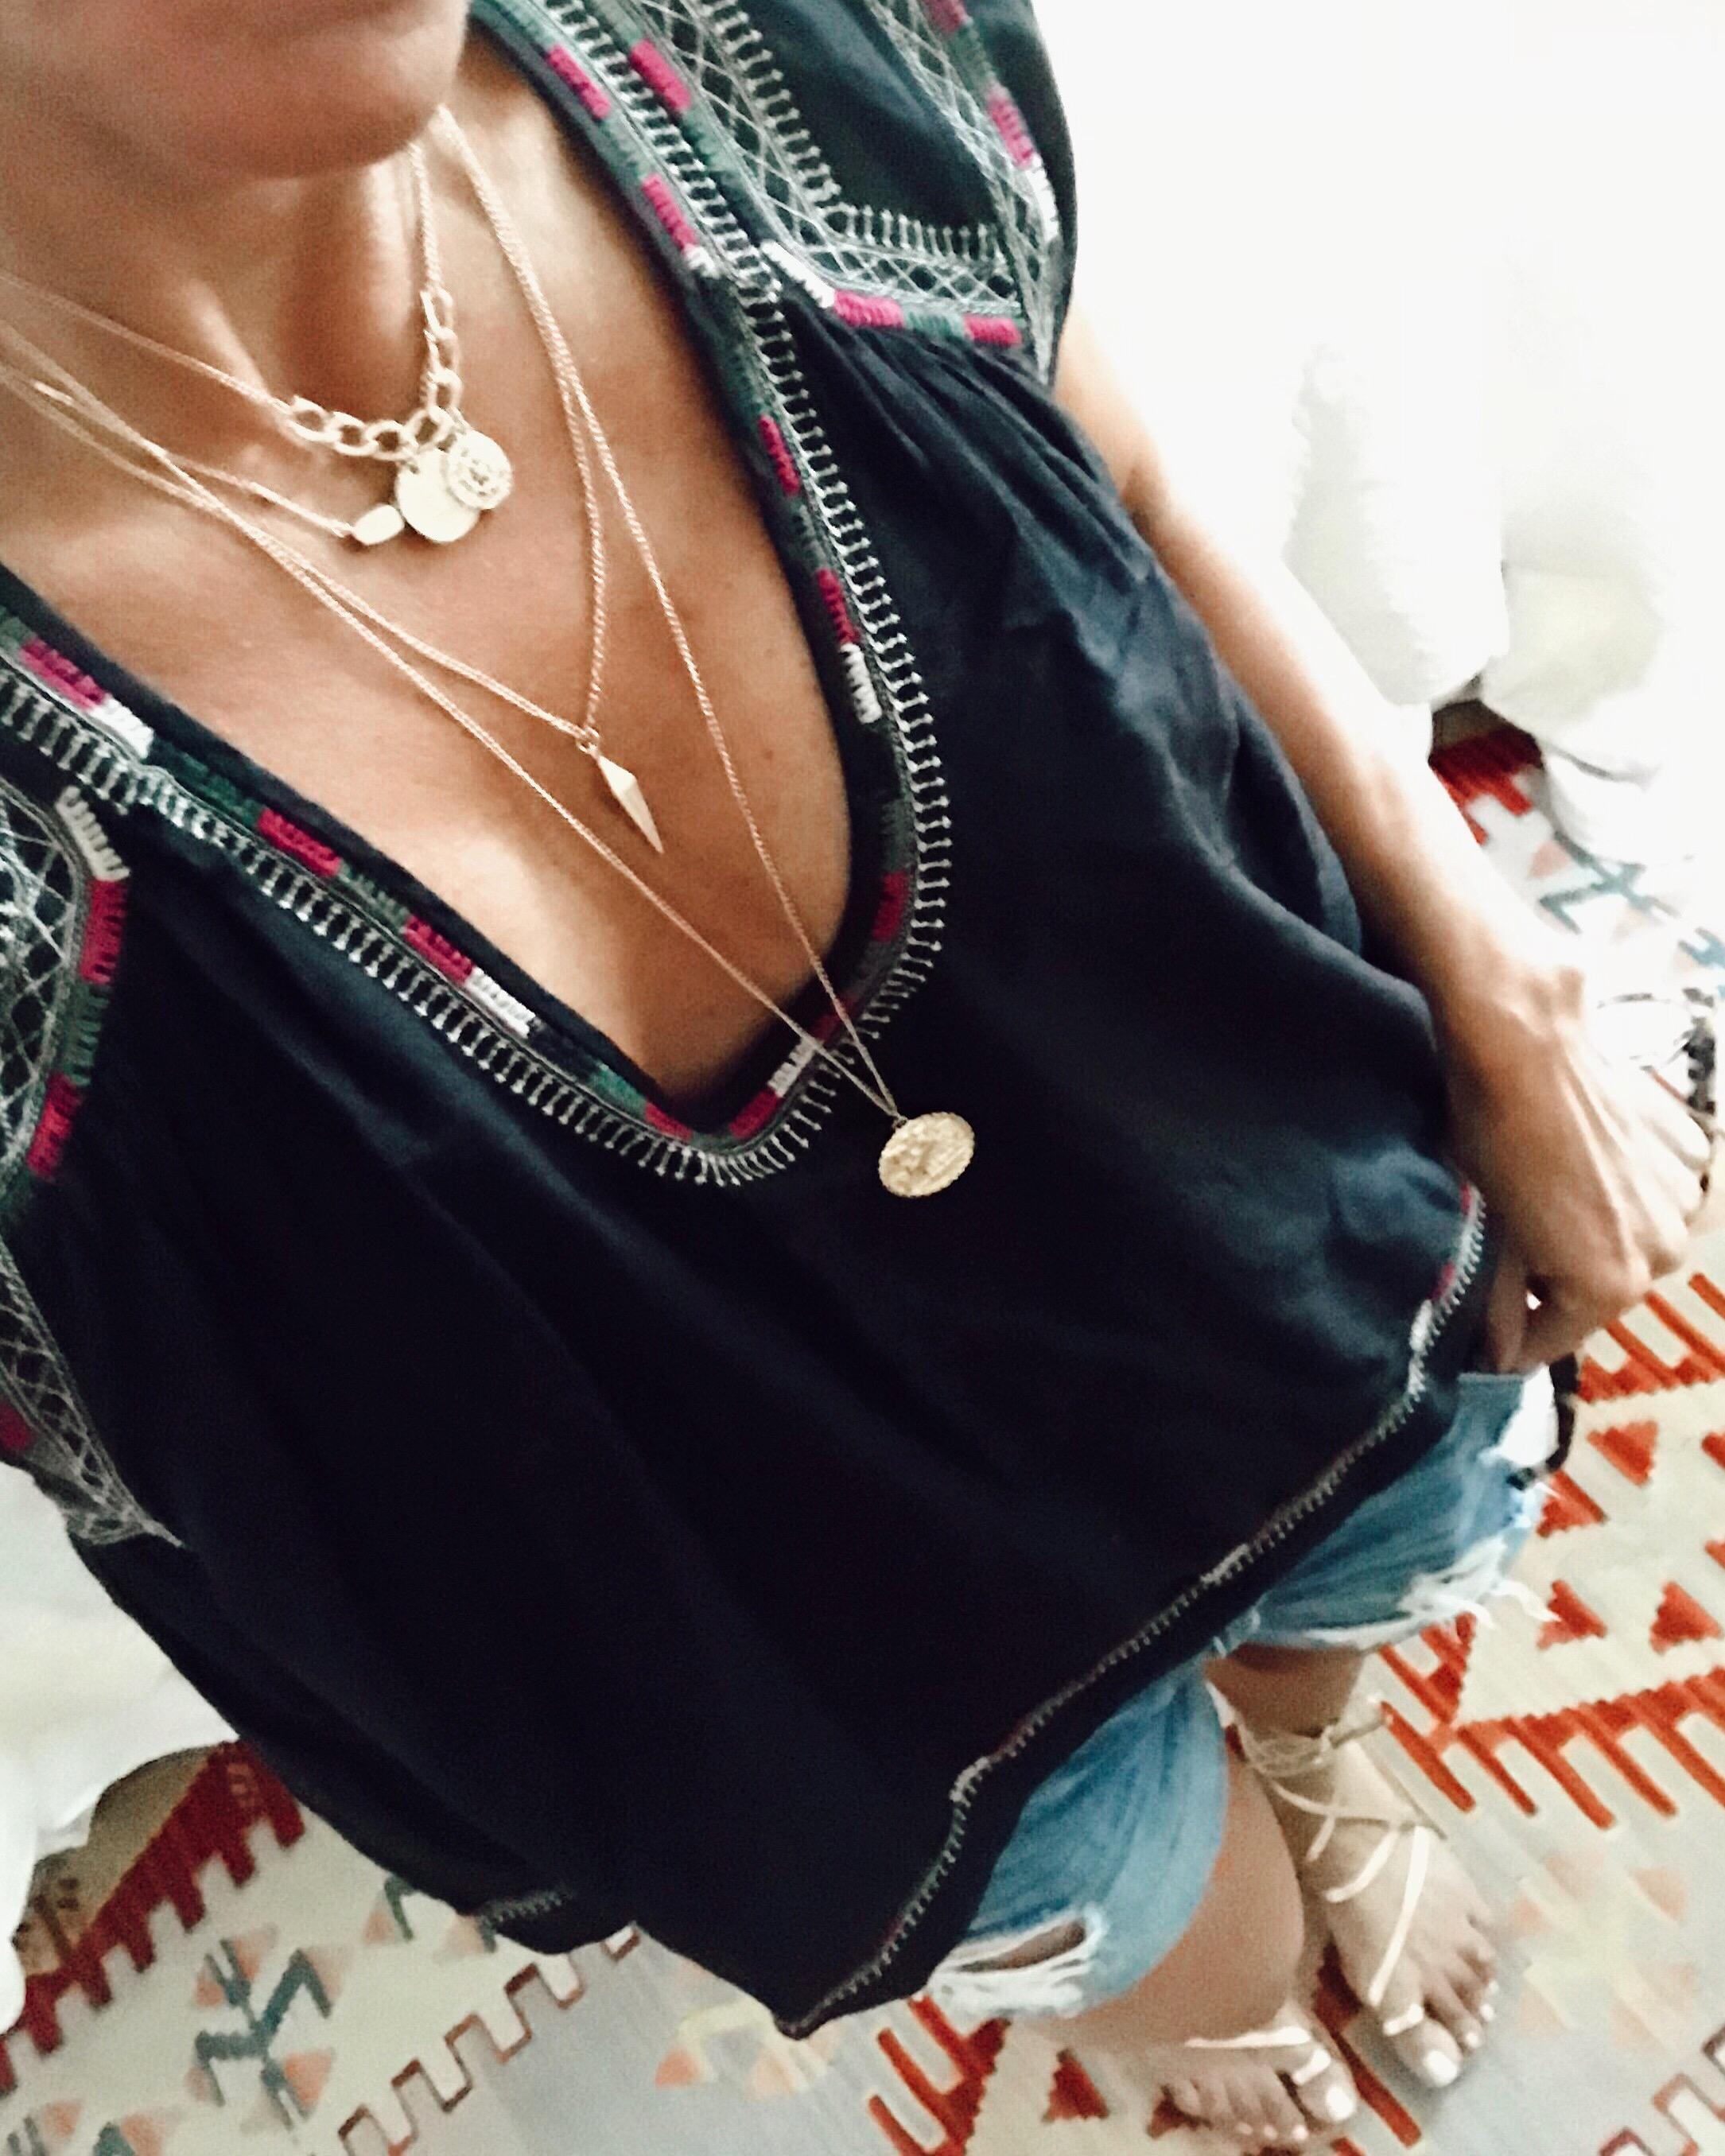 <p>&quot;Gold accessories, like this layered necklace and my favorite wrap-around sandals. They go with everything and add a subtle pop to any outfit.&quot;{&amp;nbsp;} (Image courtesy of Sylvia Colella, @simplysylvia, https://simplysylvia.com/)</p>